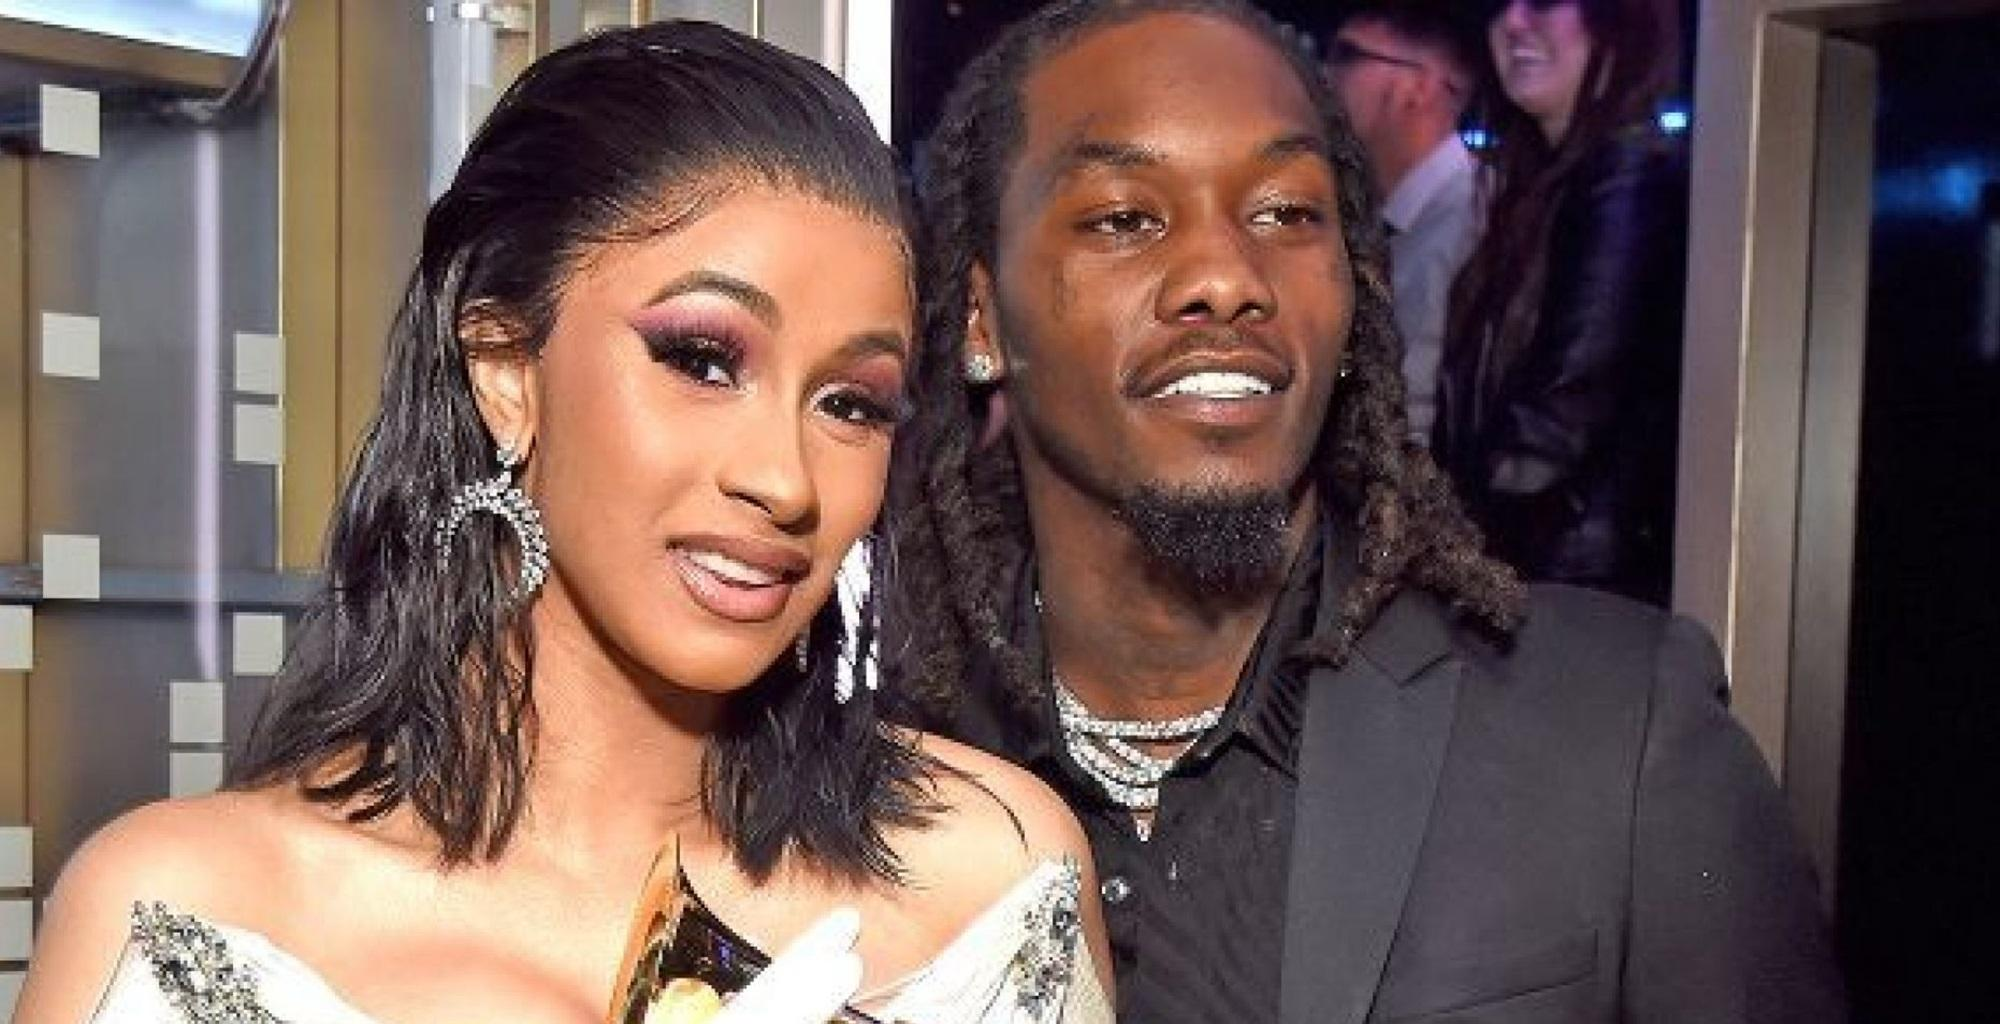 Offset Shows Off His Hidden Talent In New Video, Can He Give Cardi B A Run For Her Money?